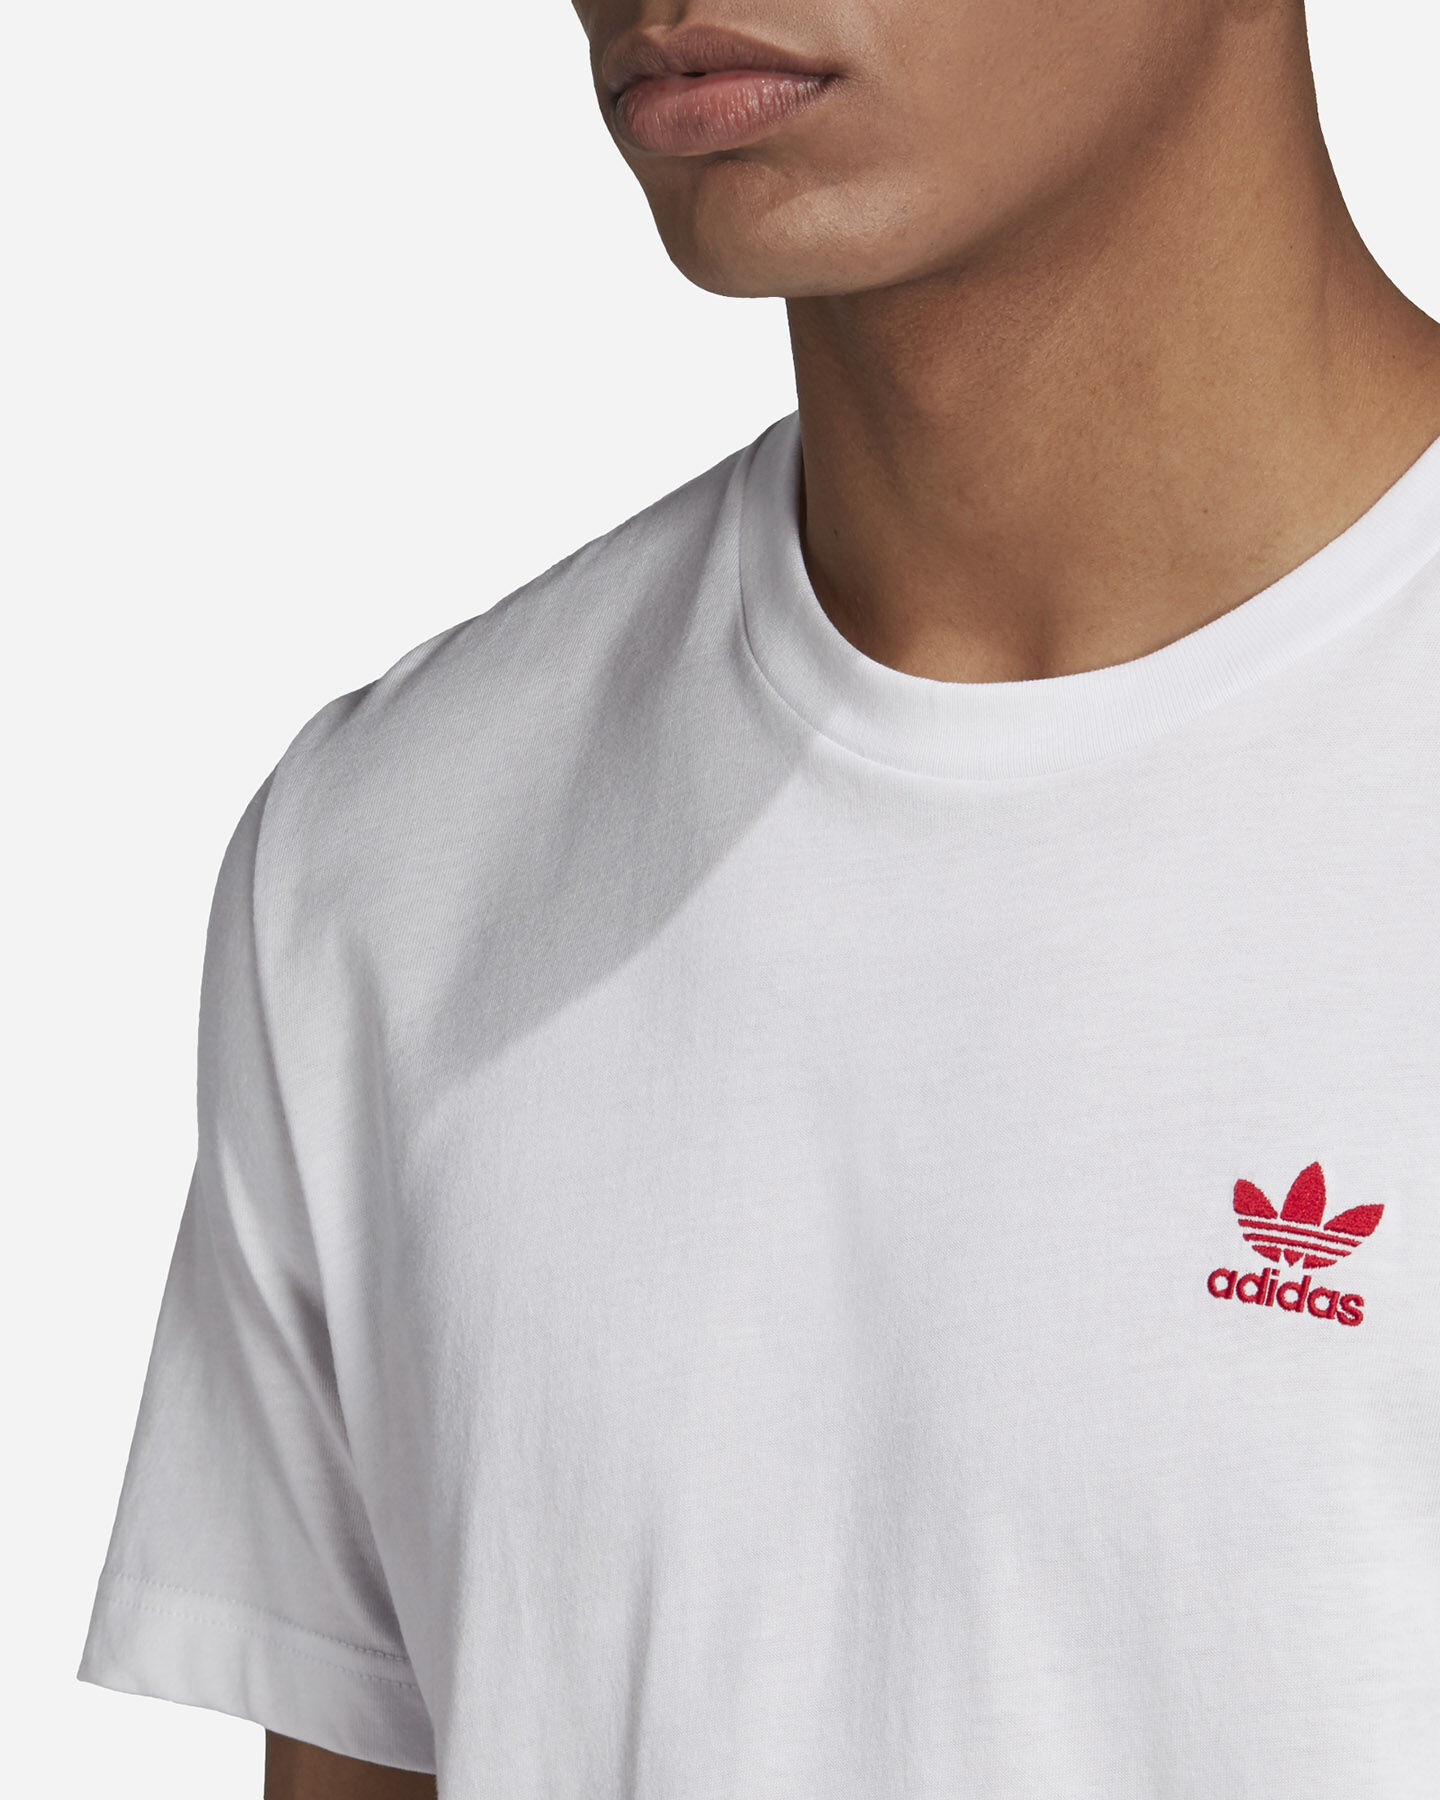 T-Shirt ADIDAS SMALL LOGO M S5210267 scatto 5